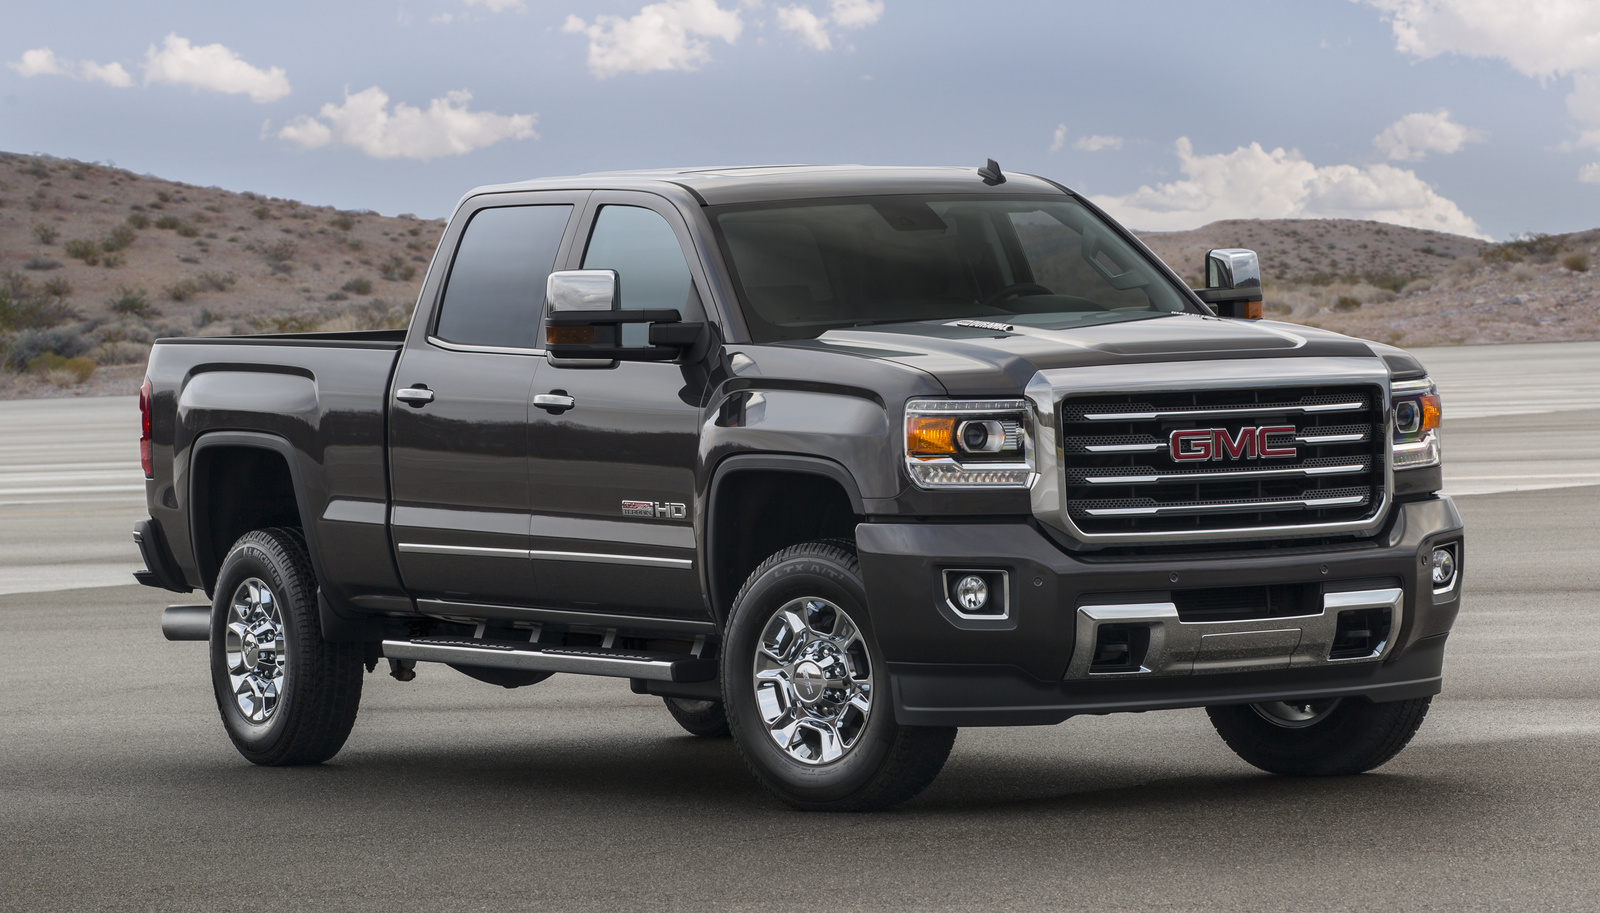 2016 gmc sierra 3500hd overview cargurus. Black Bedroom Furniture Sets. Home Design Ideas